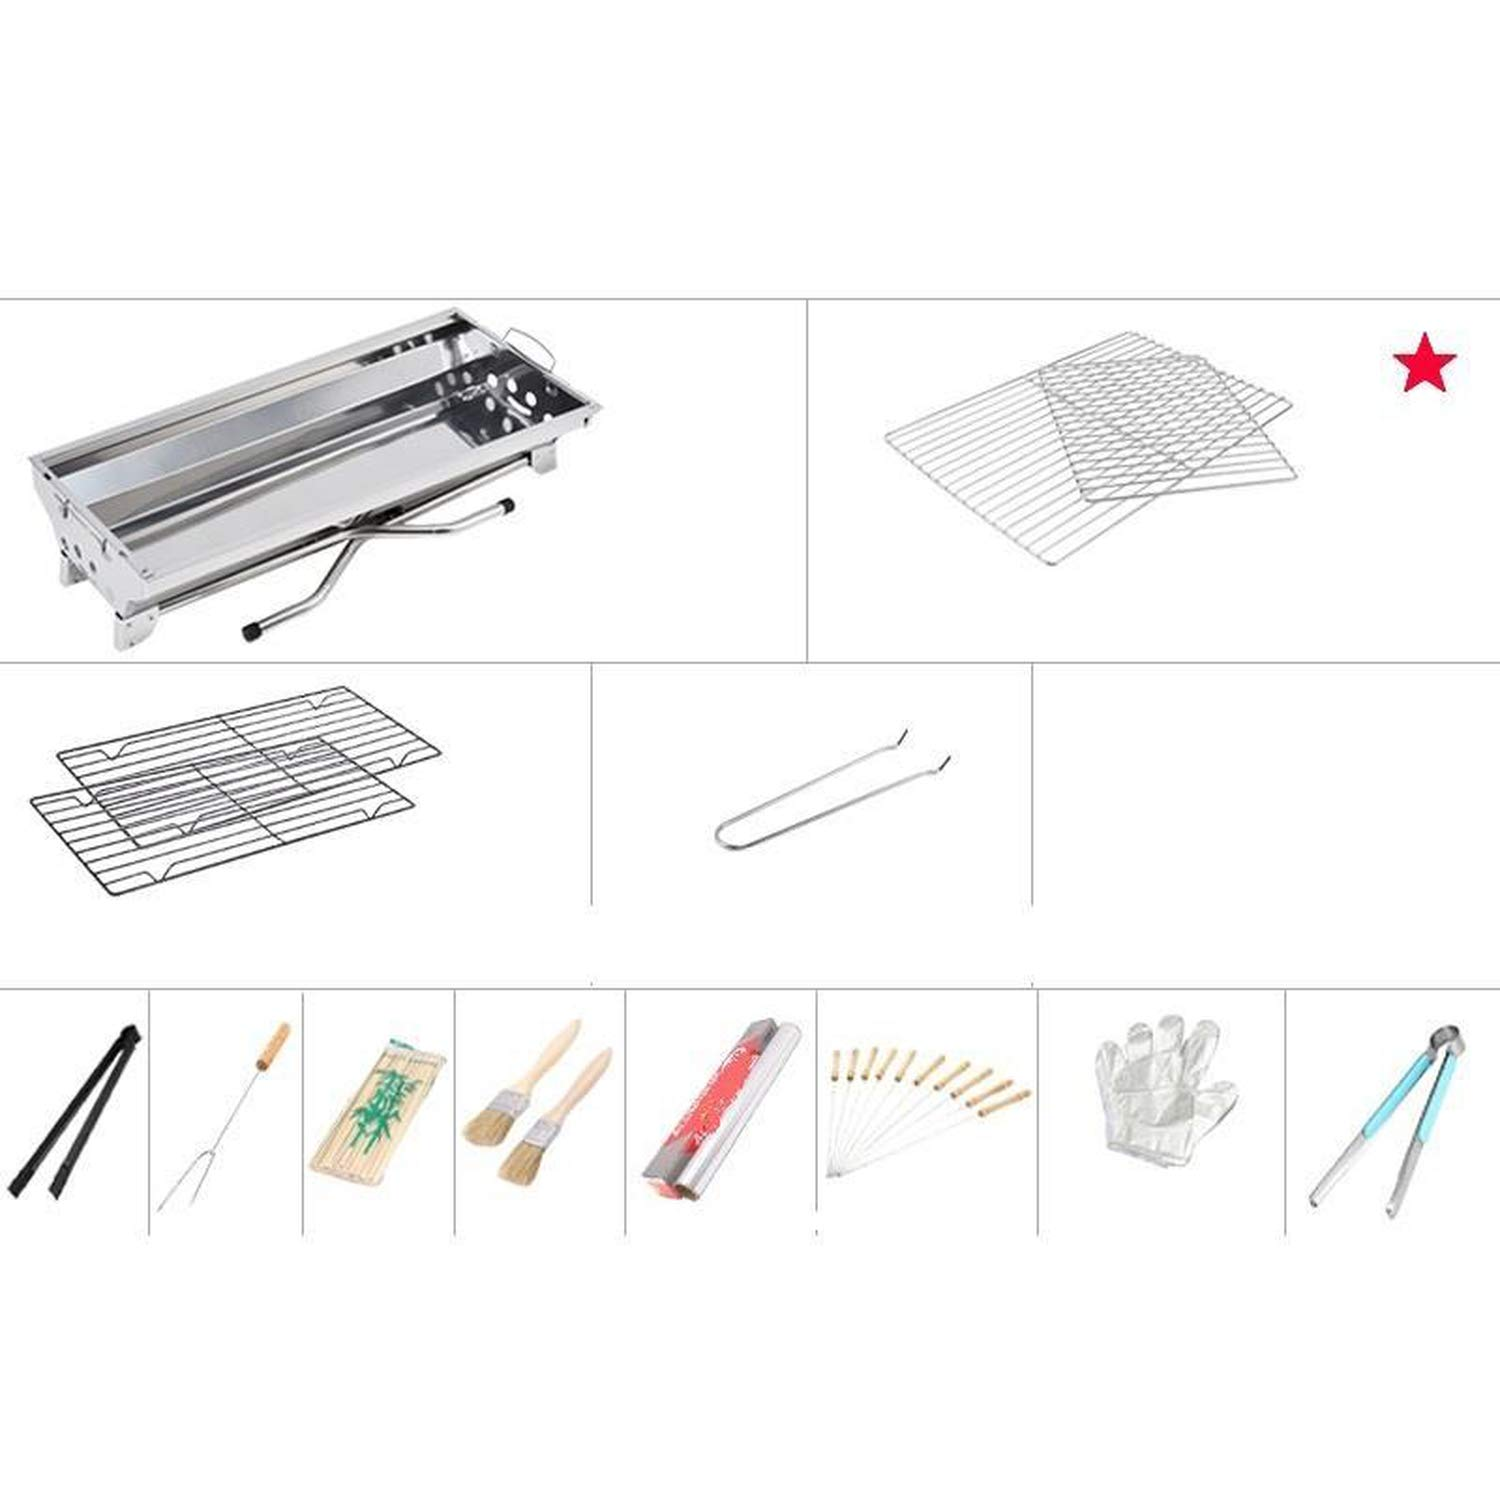 Amazon.com: Hey Meal Barbeque Korean Portable BBQ Griller Griglia ...